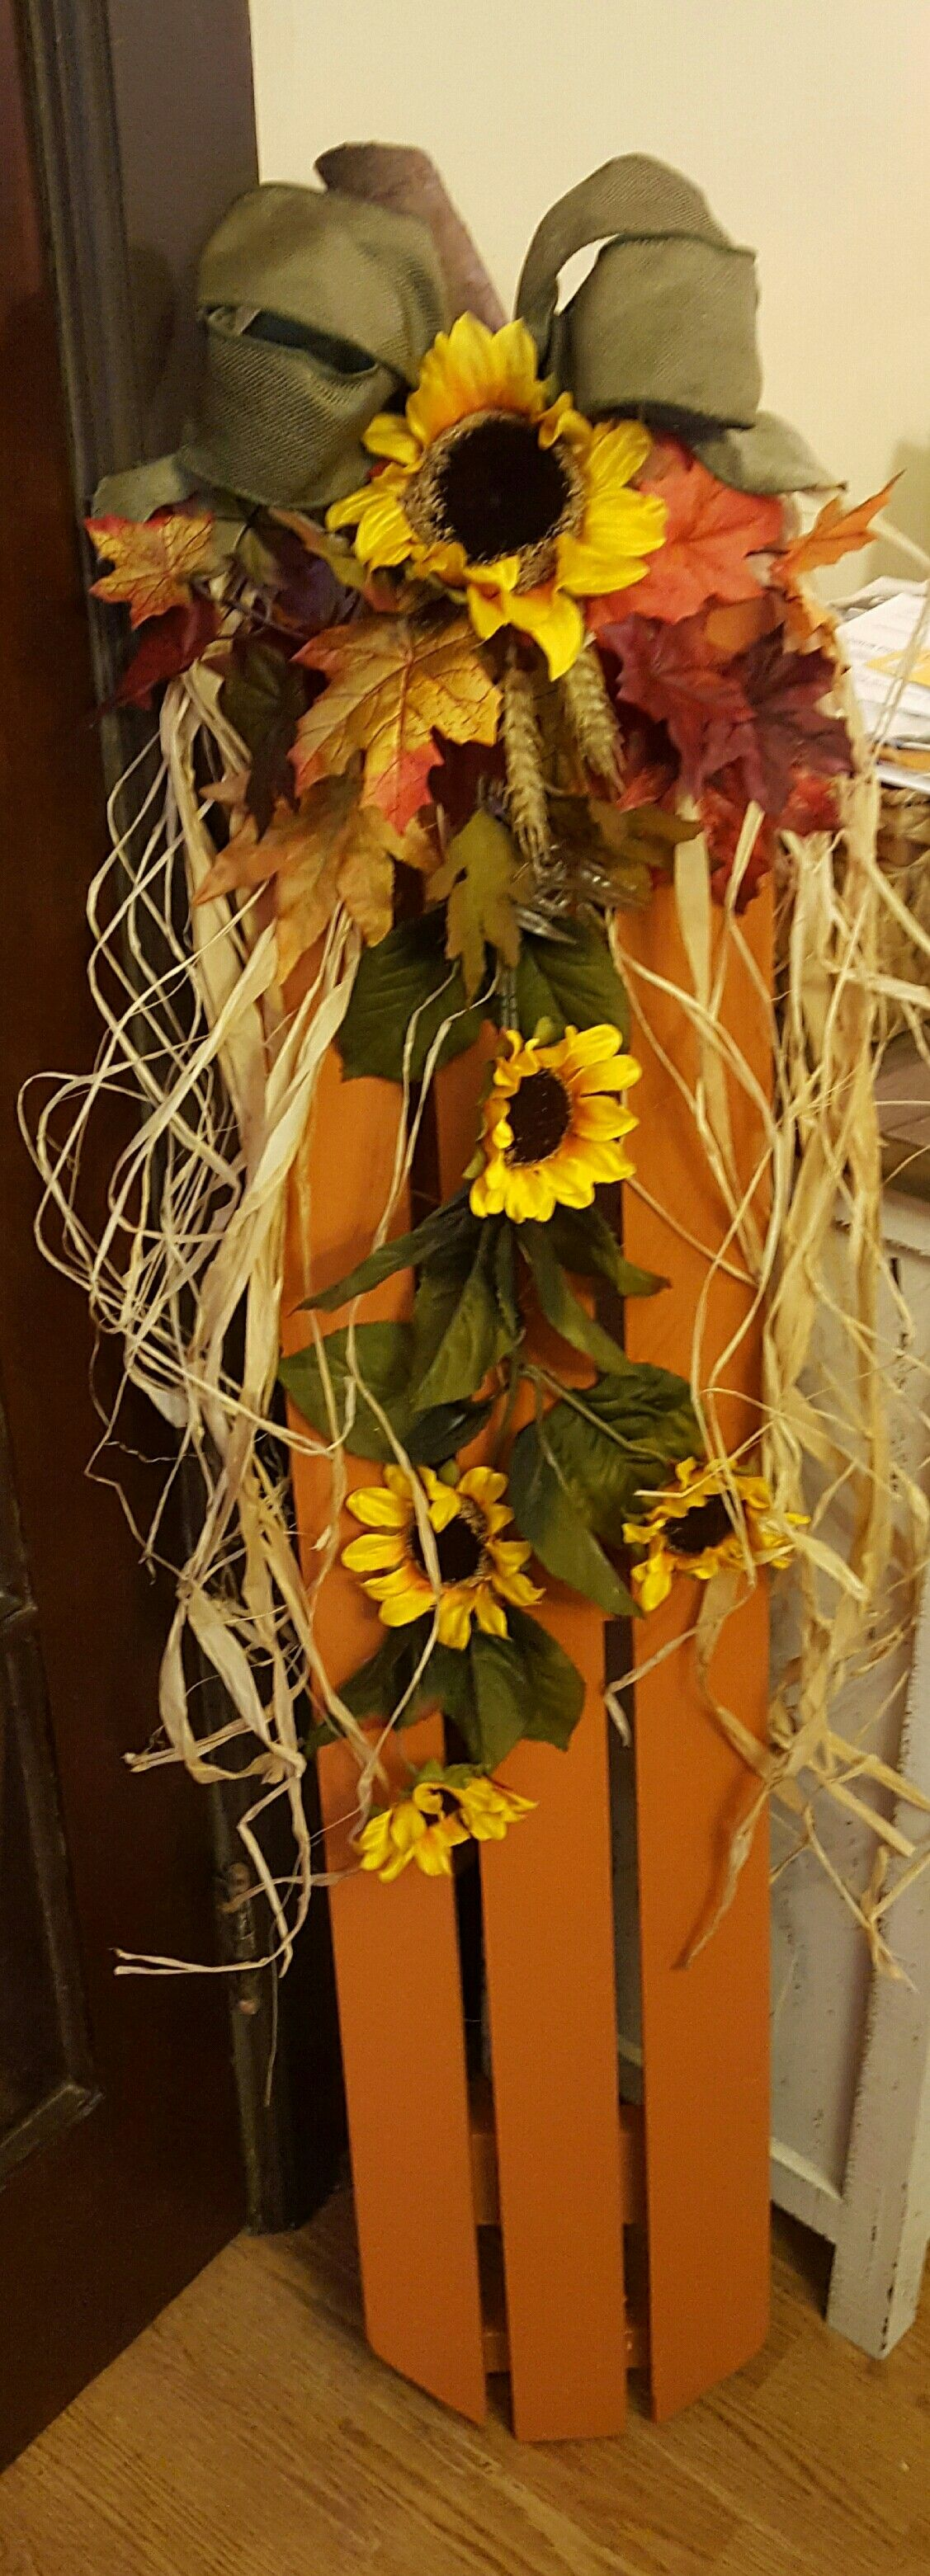 Fall decoration made from pallet | Fall pallet decor ...